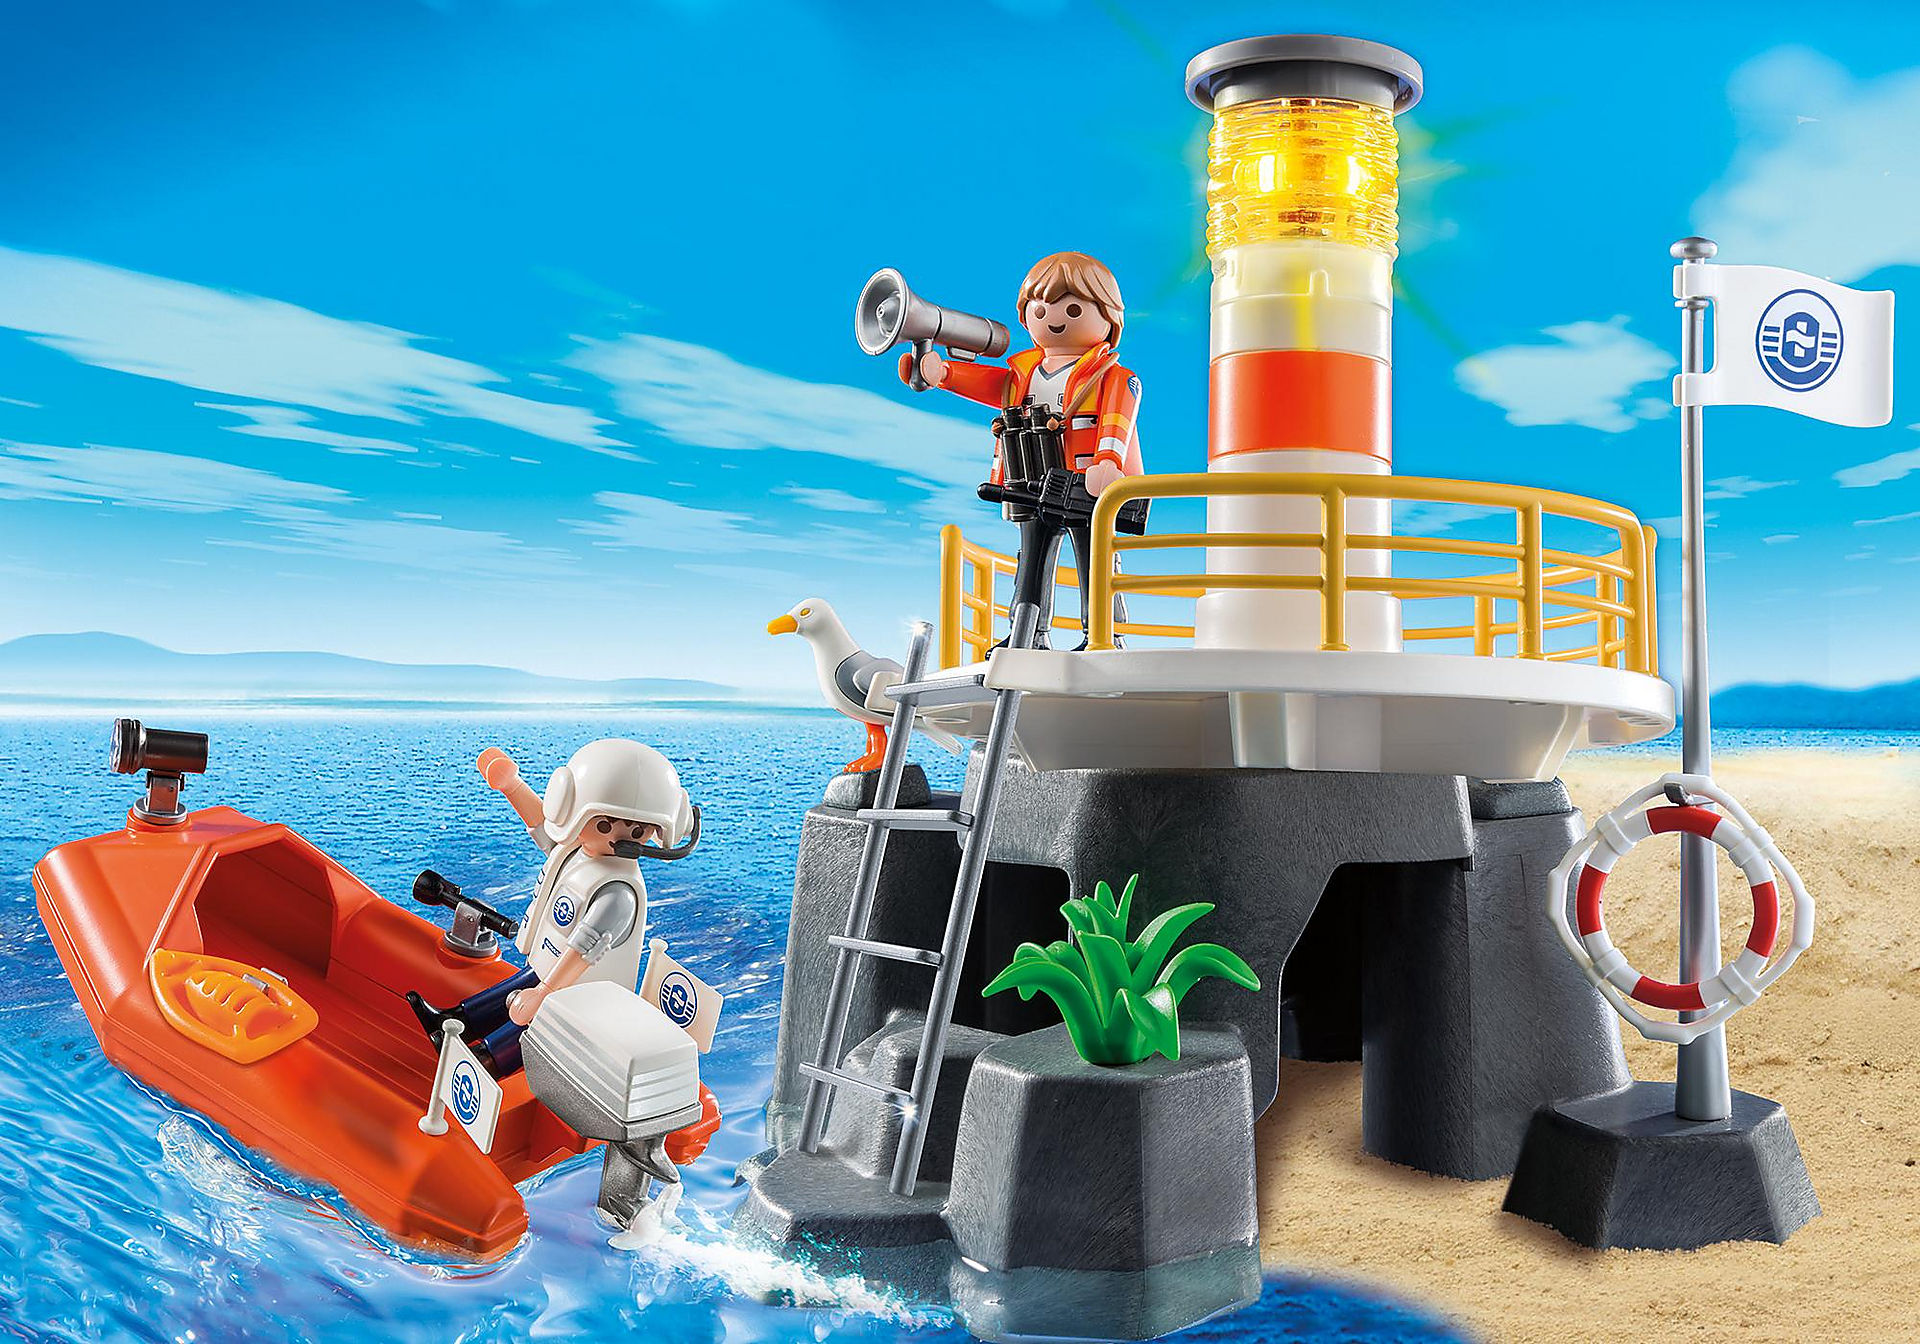 5626 Lighthouse with Lifeboat zoom image1